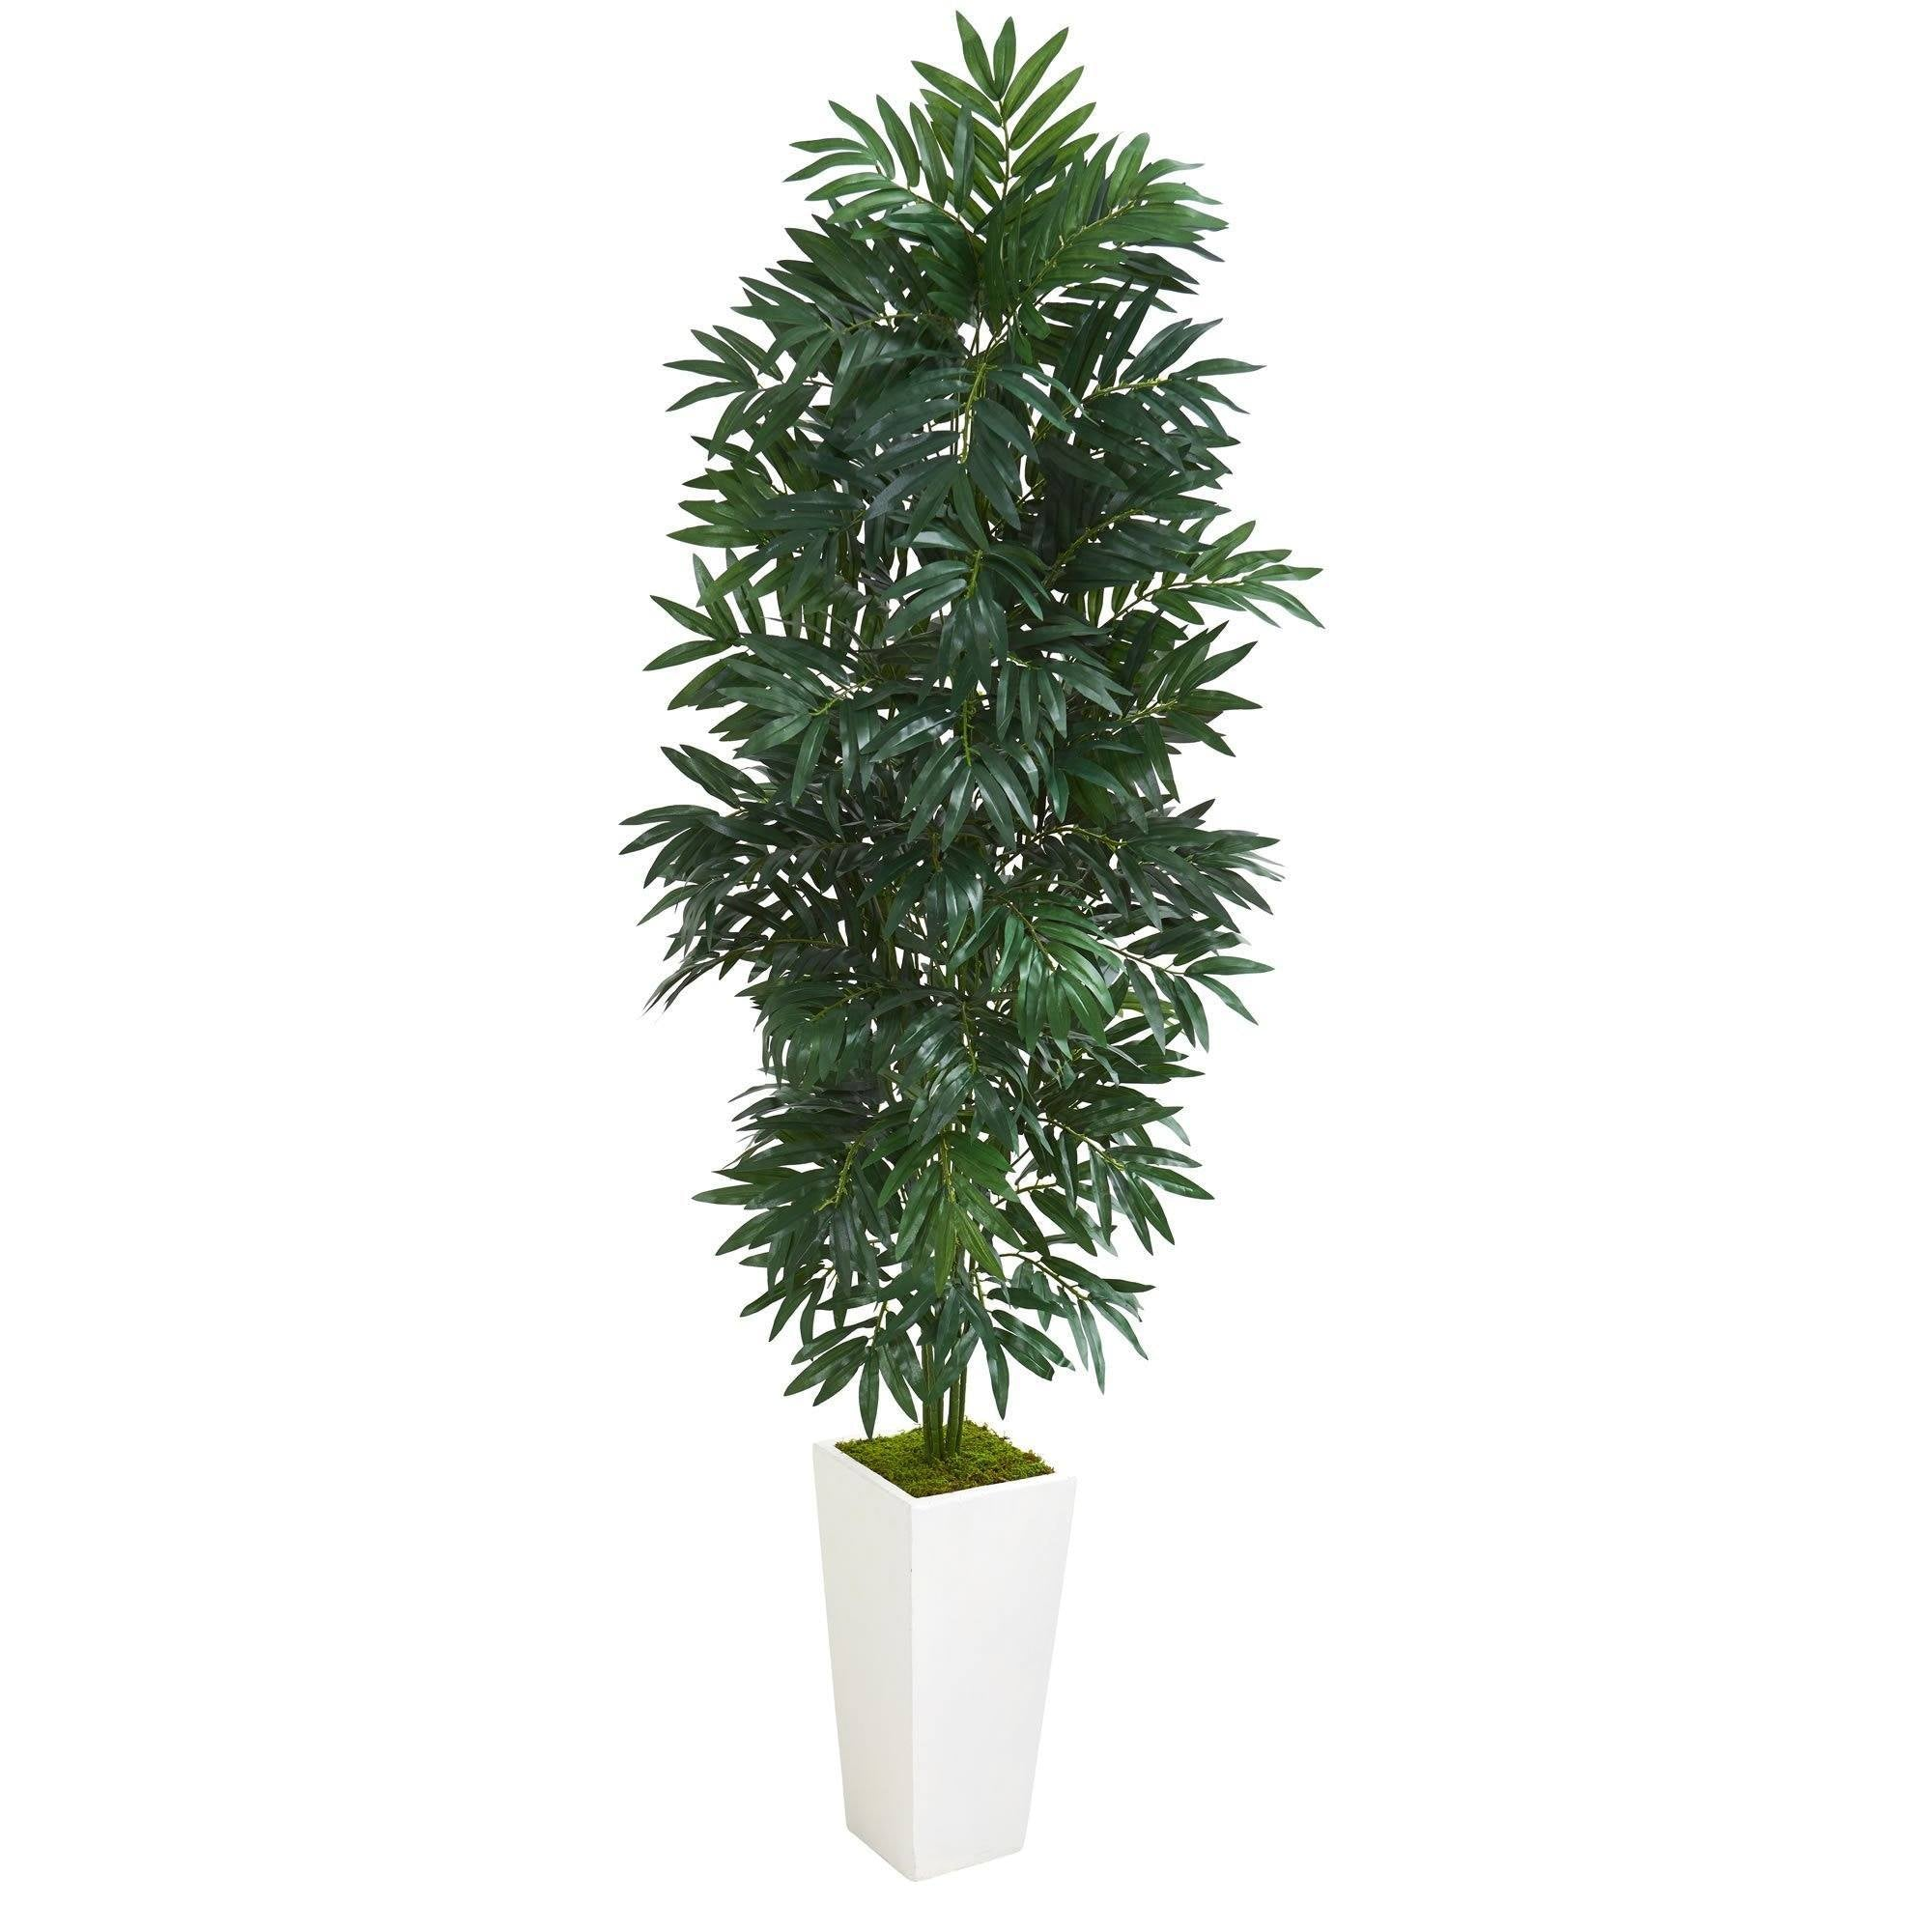 5 Bamboo Palm Artificial Plant In White Planter Nearly Natural